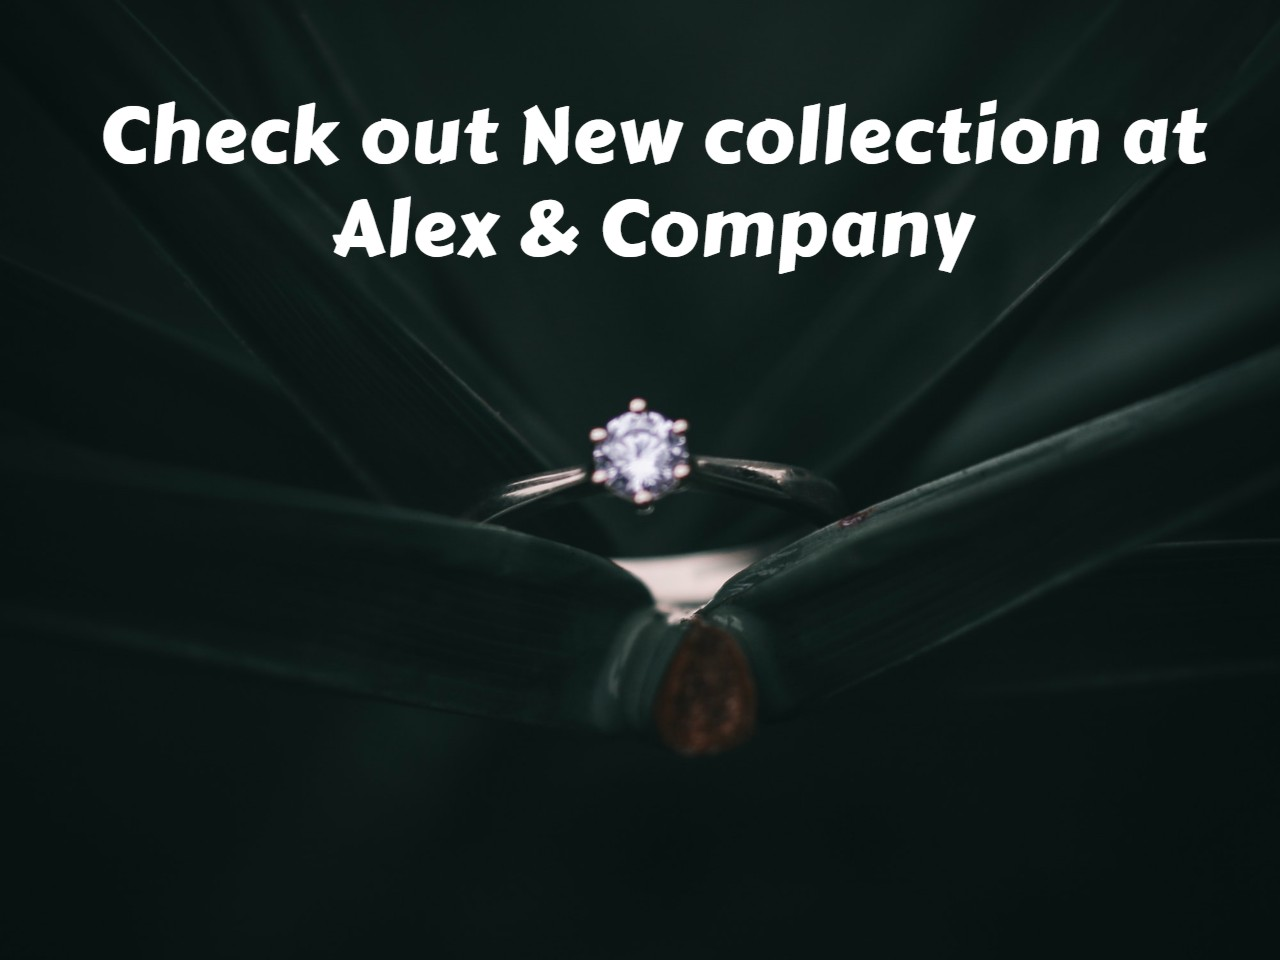 Check out New collection at Alex & Company